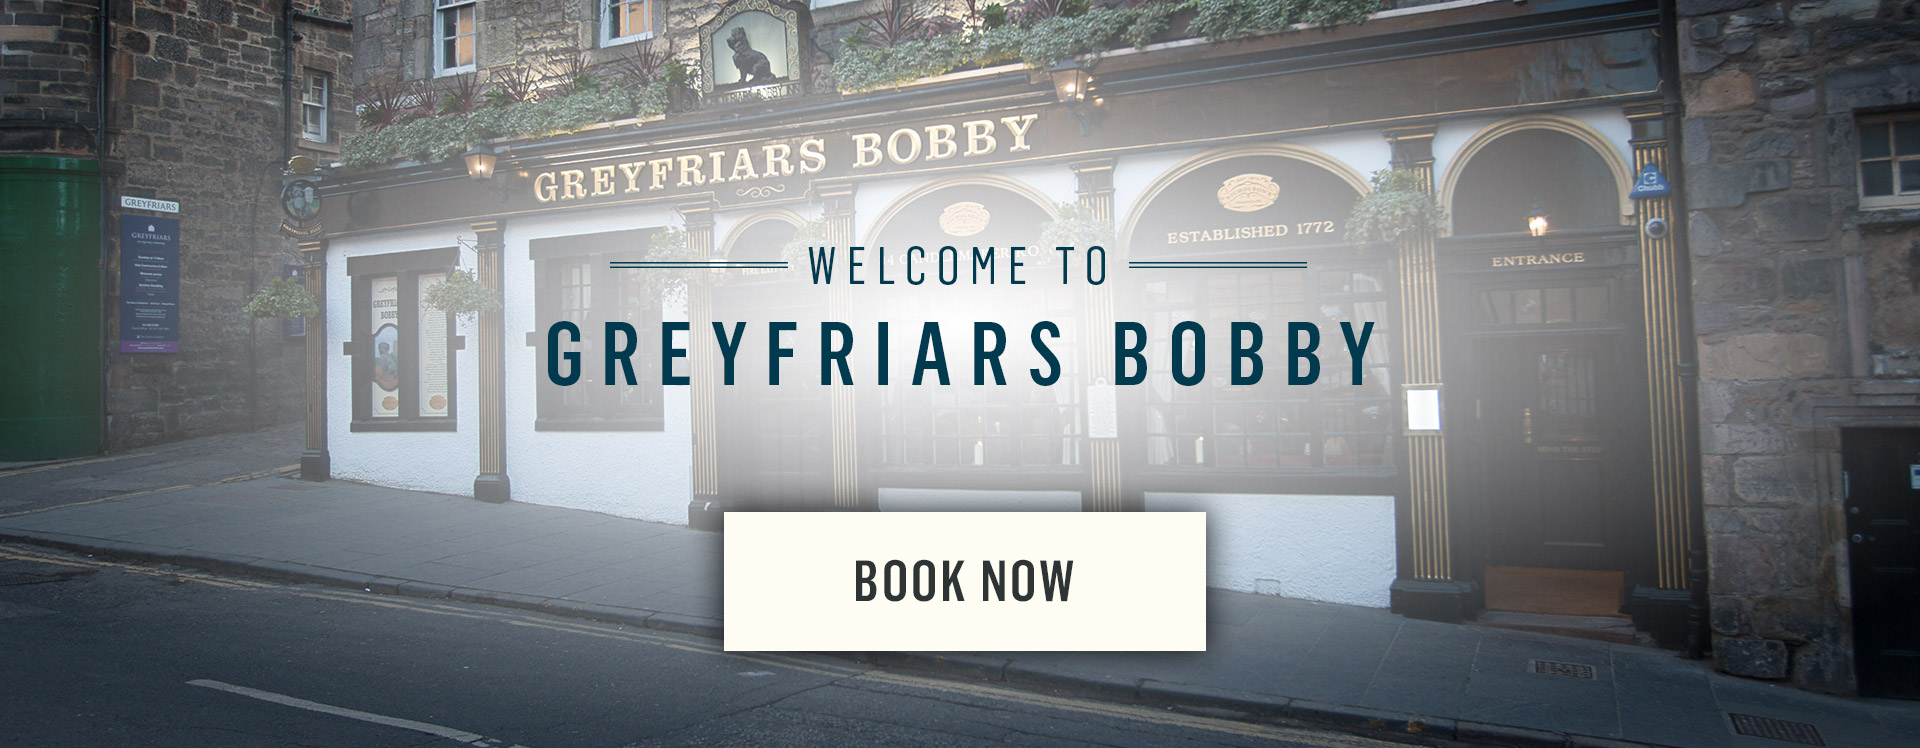 Welcome to Greyfriars Bobby's Bar - Book Now